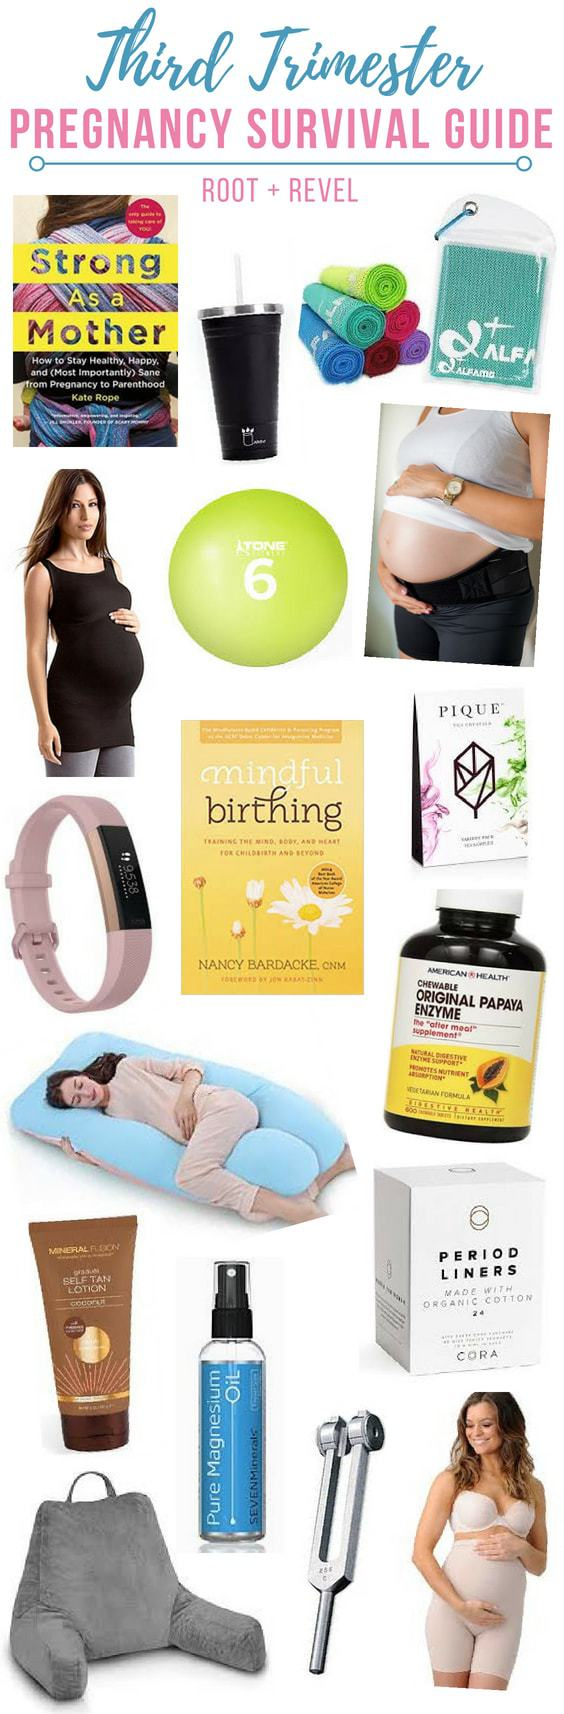 Calling all my fellow natural mamas-to-be! This Third Trimester Pregnancy Survival Guide will provide you with tips, tricks and product recommendations (from books and holistic remedies to maternity must-haves, and advice on diet and weight gain, nausea, and pains) to help you get through the home stretch of your pregnancy!